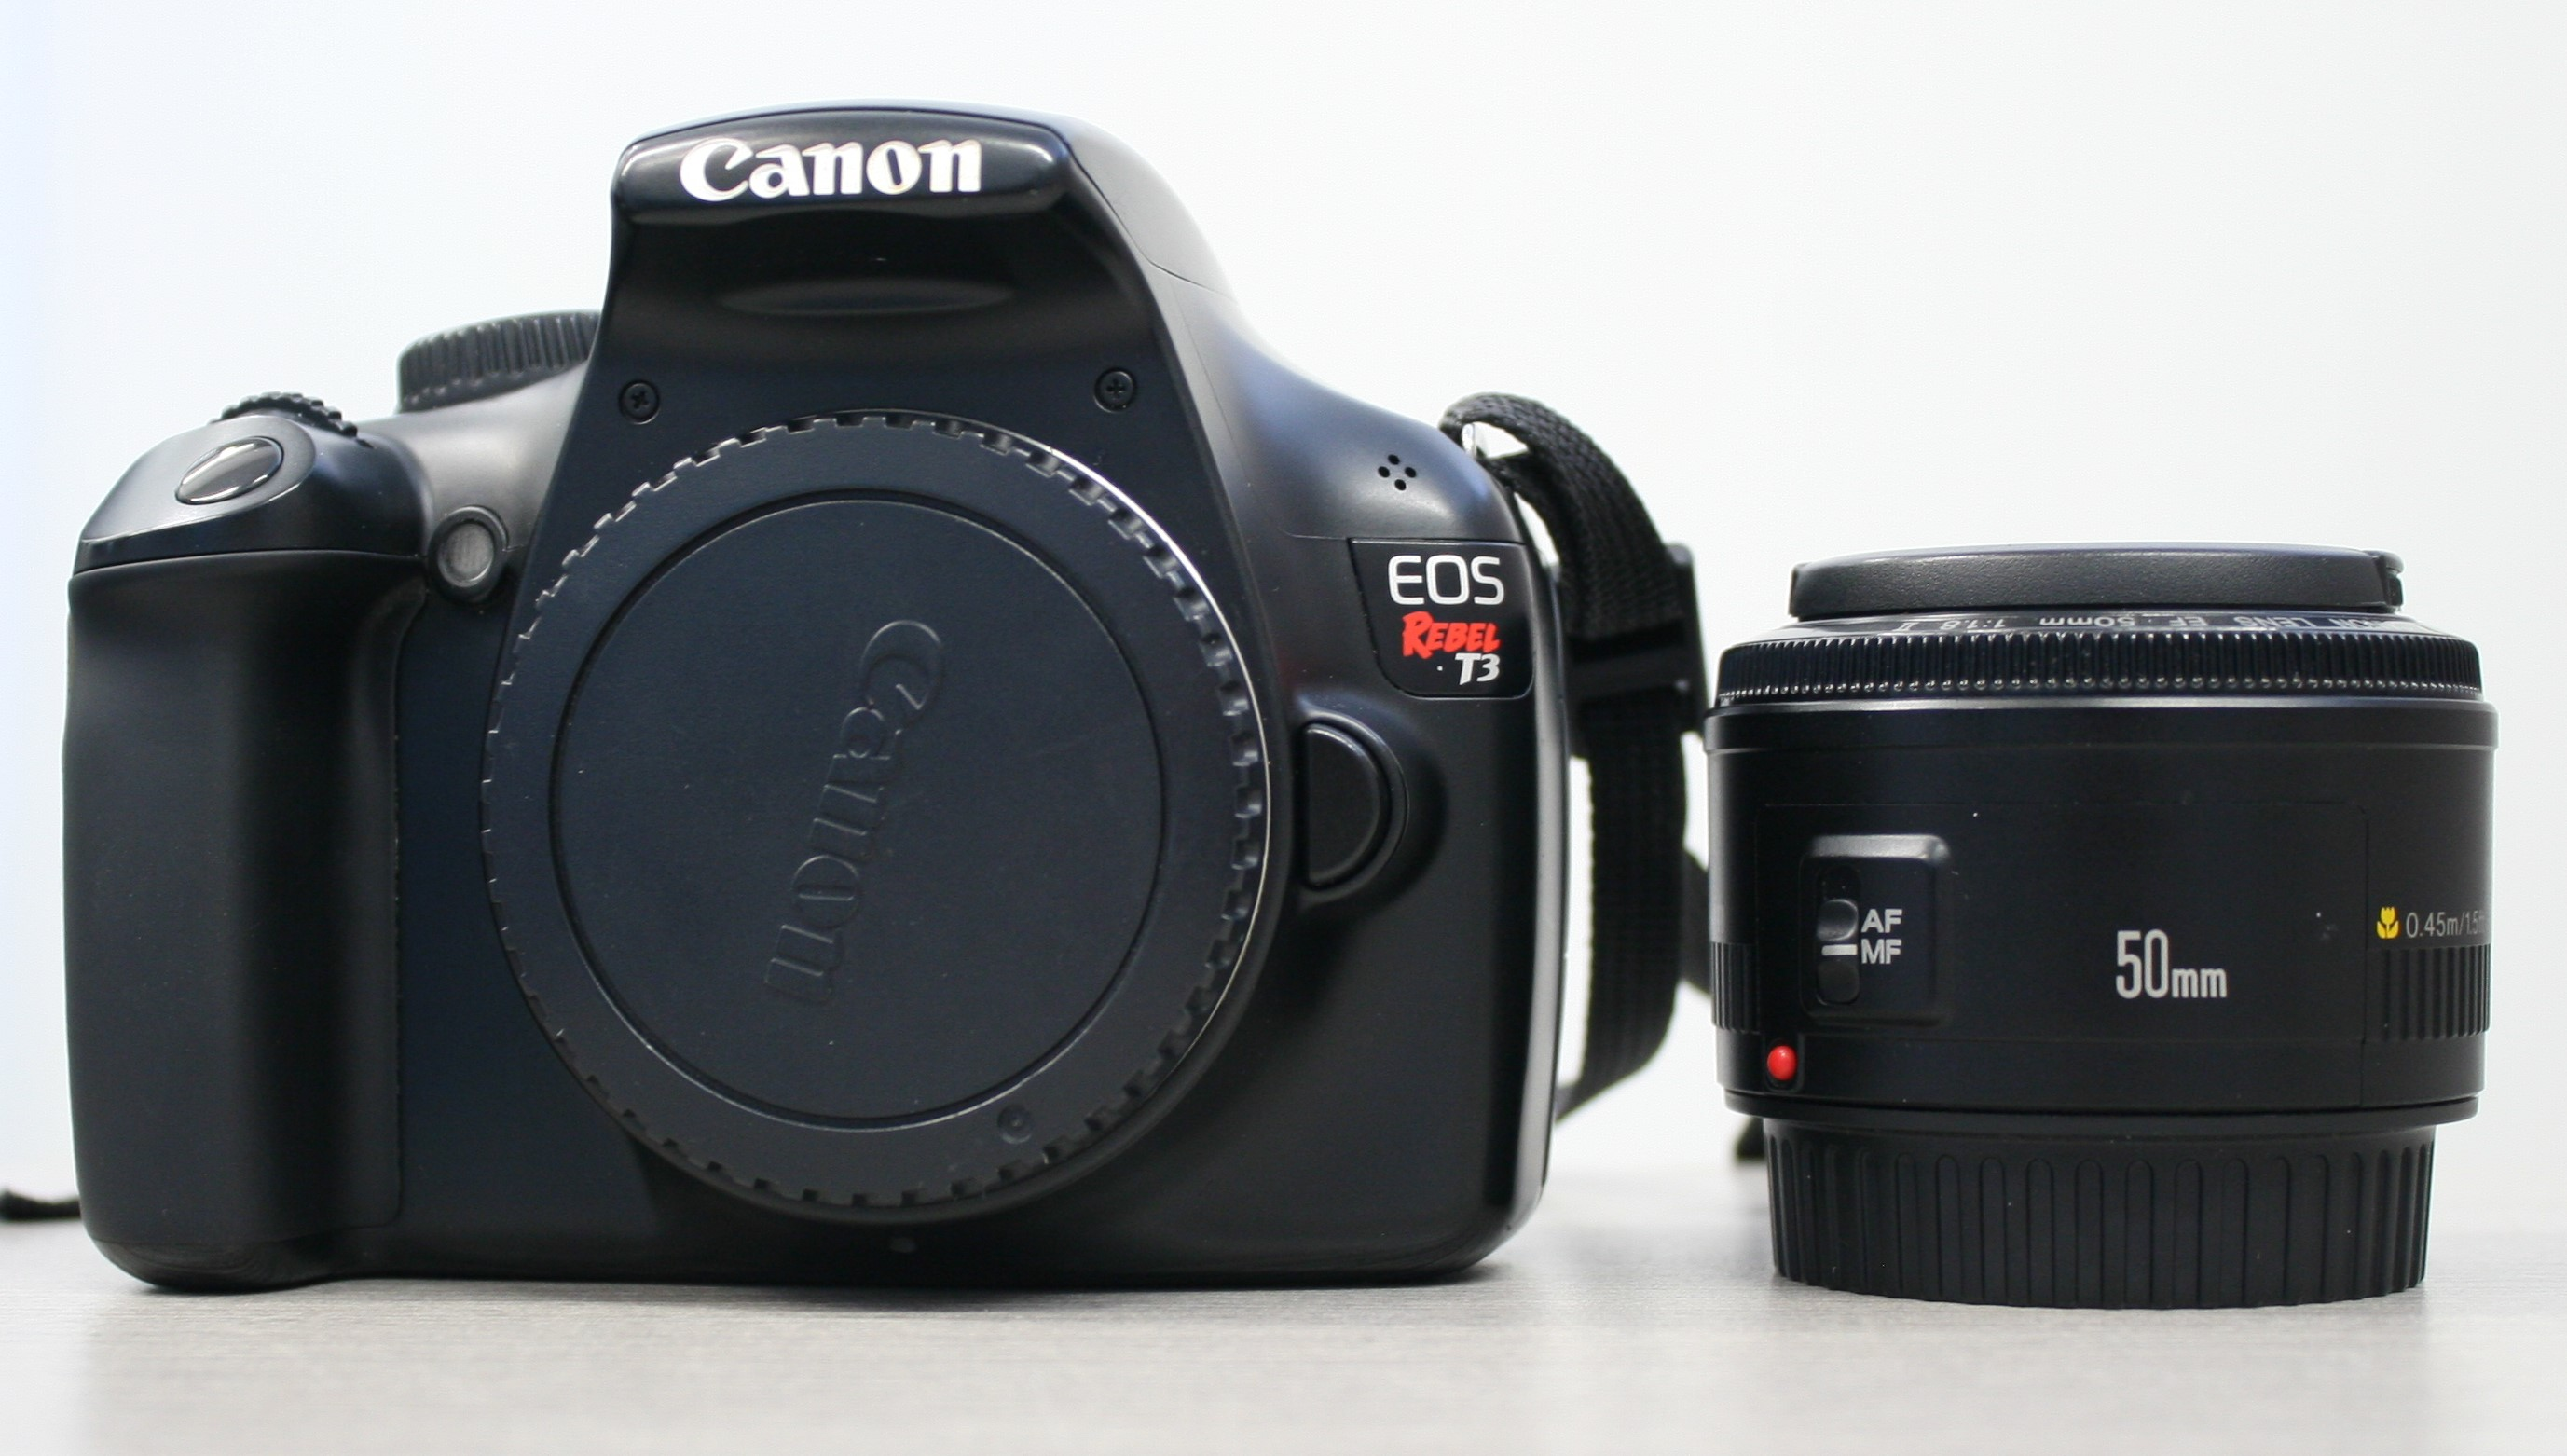 EOS Rebel T3 with 50mm Lens